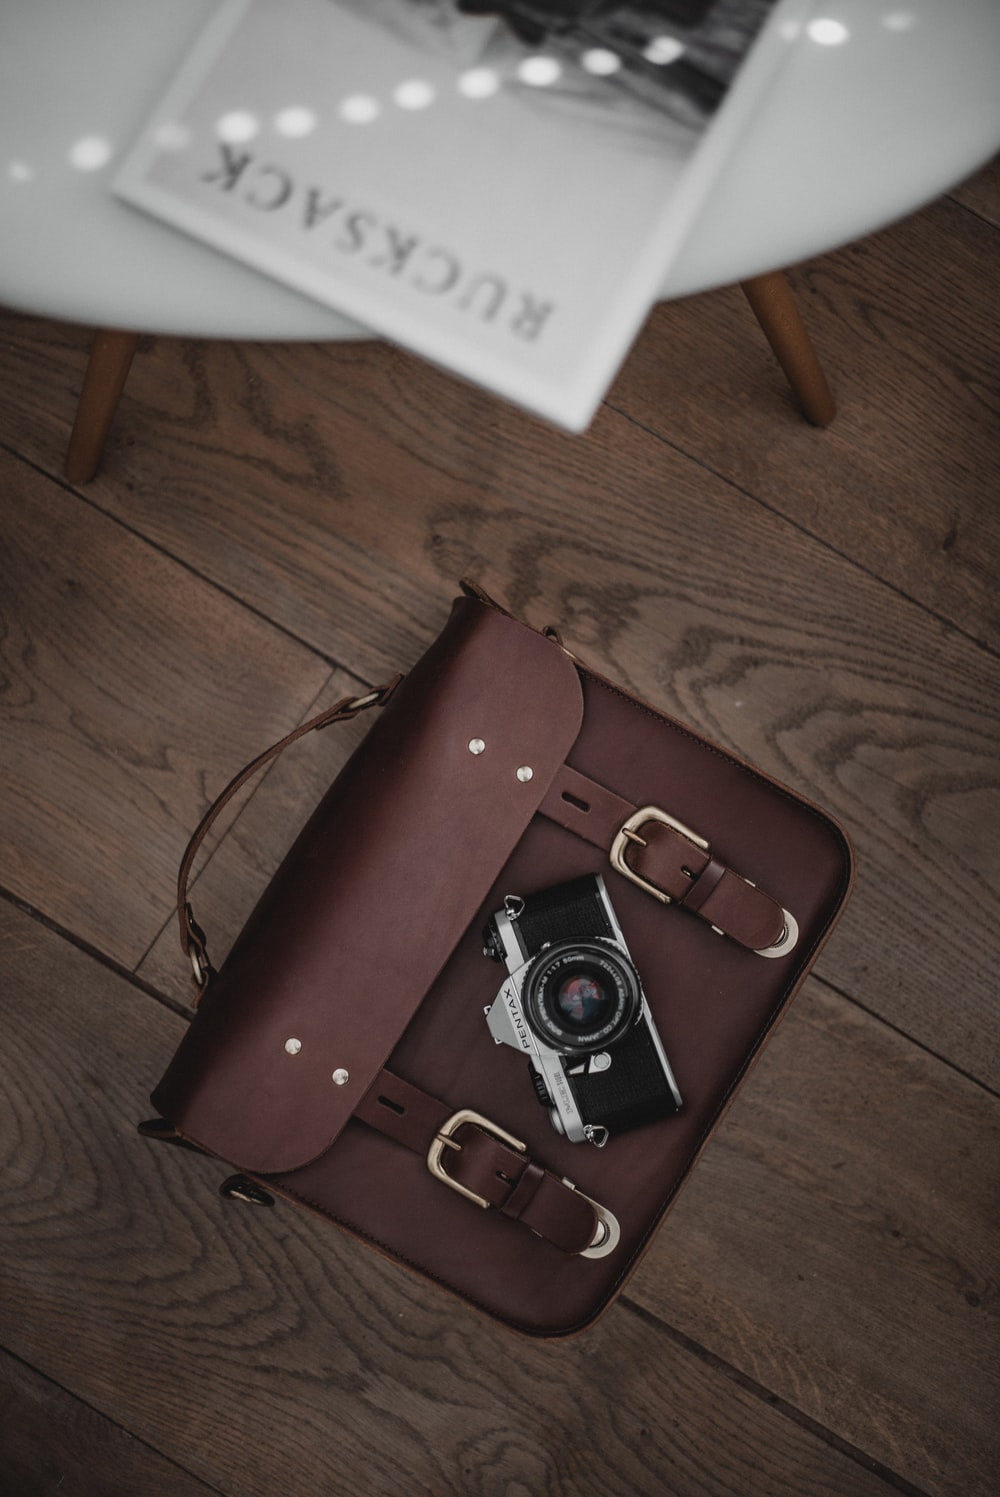 brown leather case on brown surface